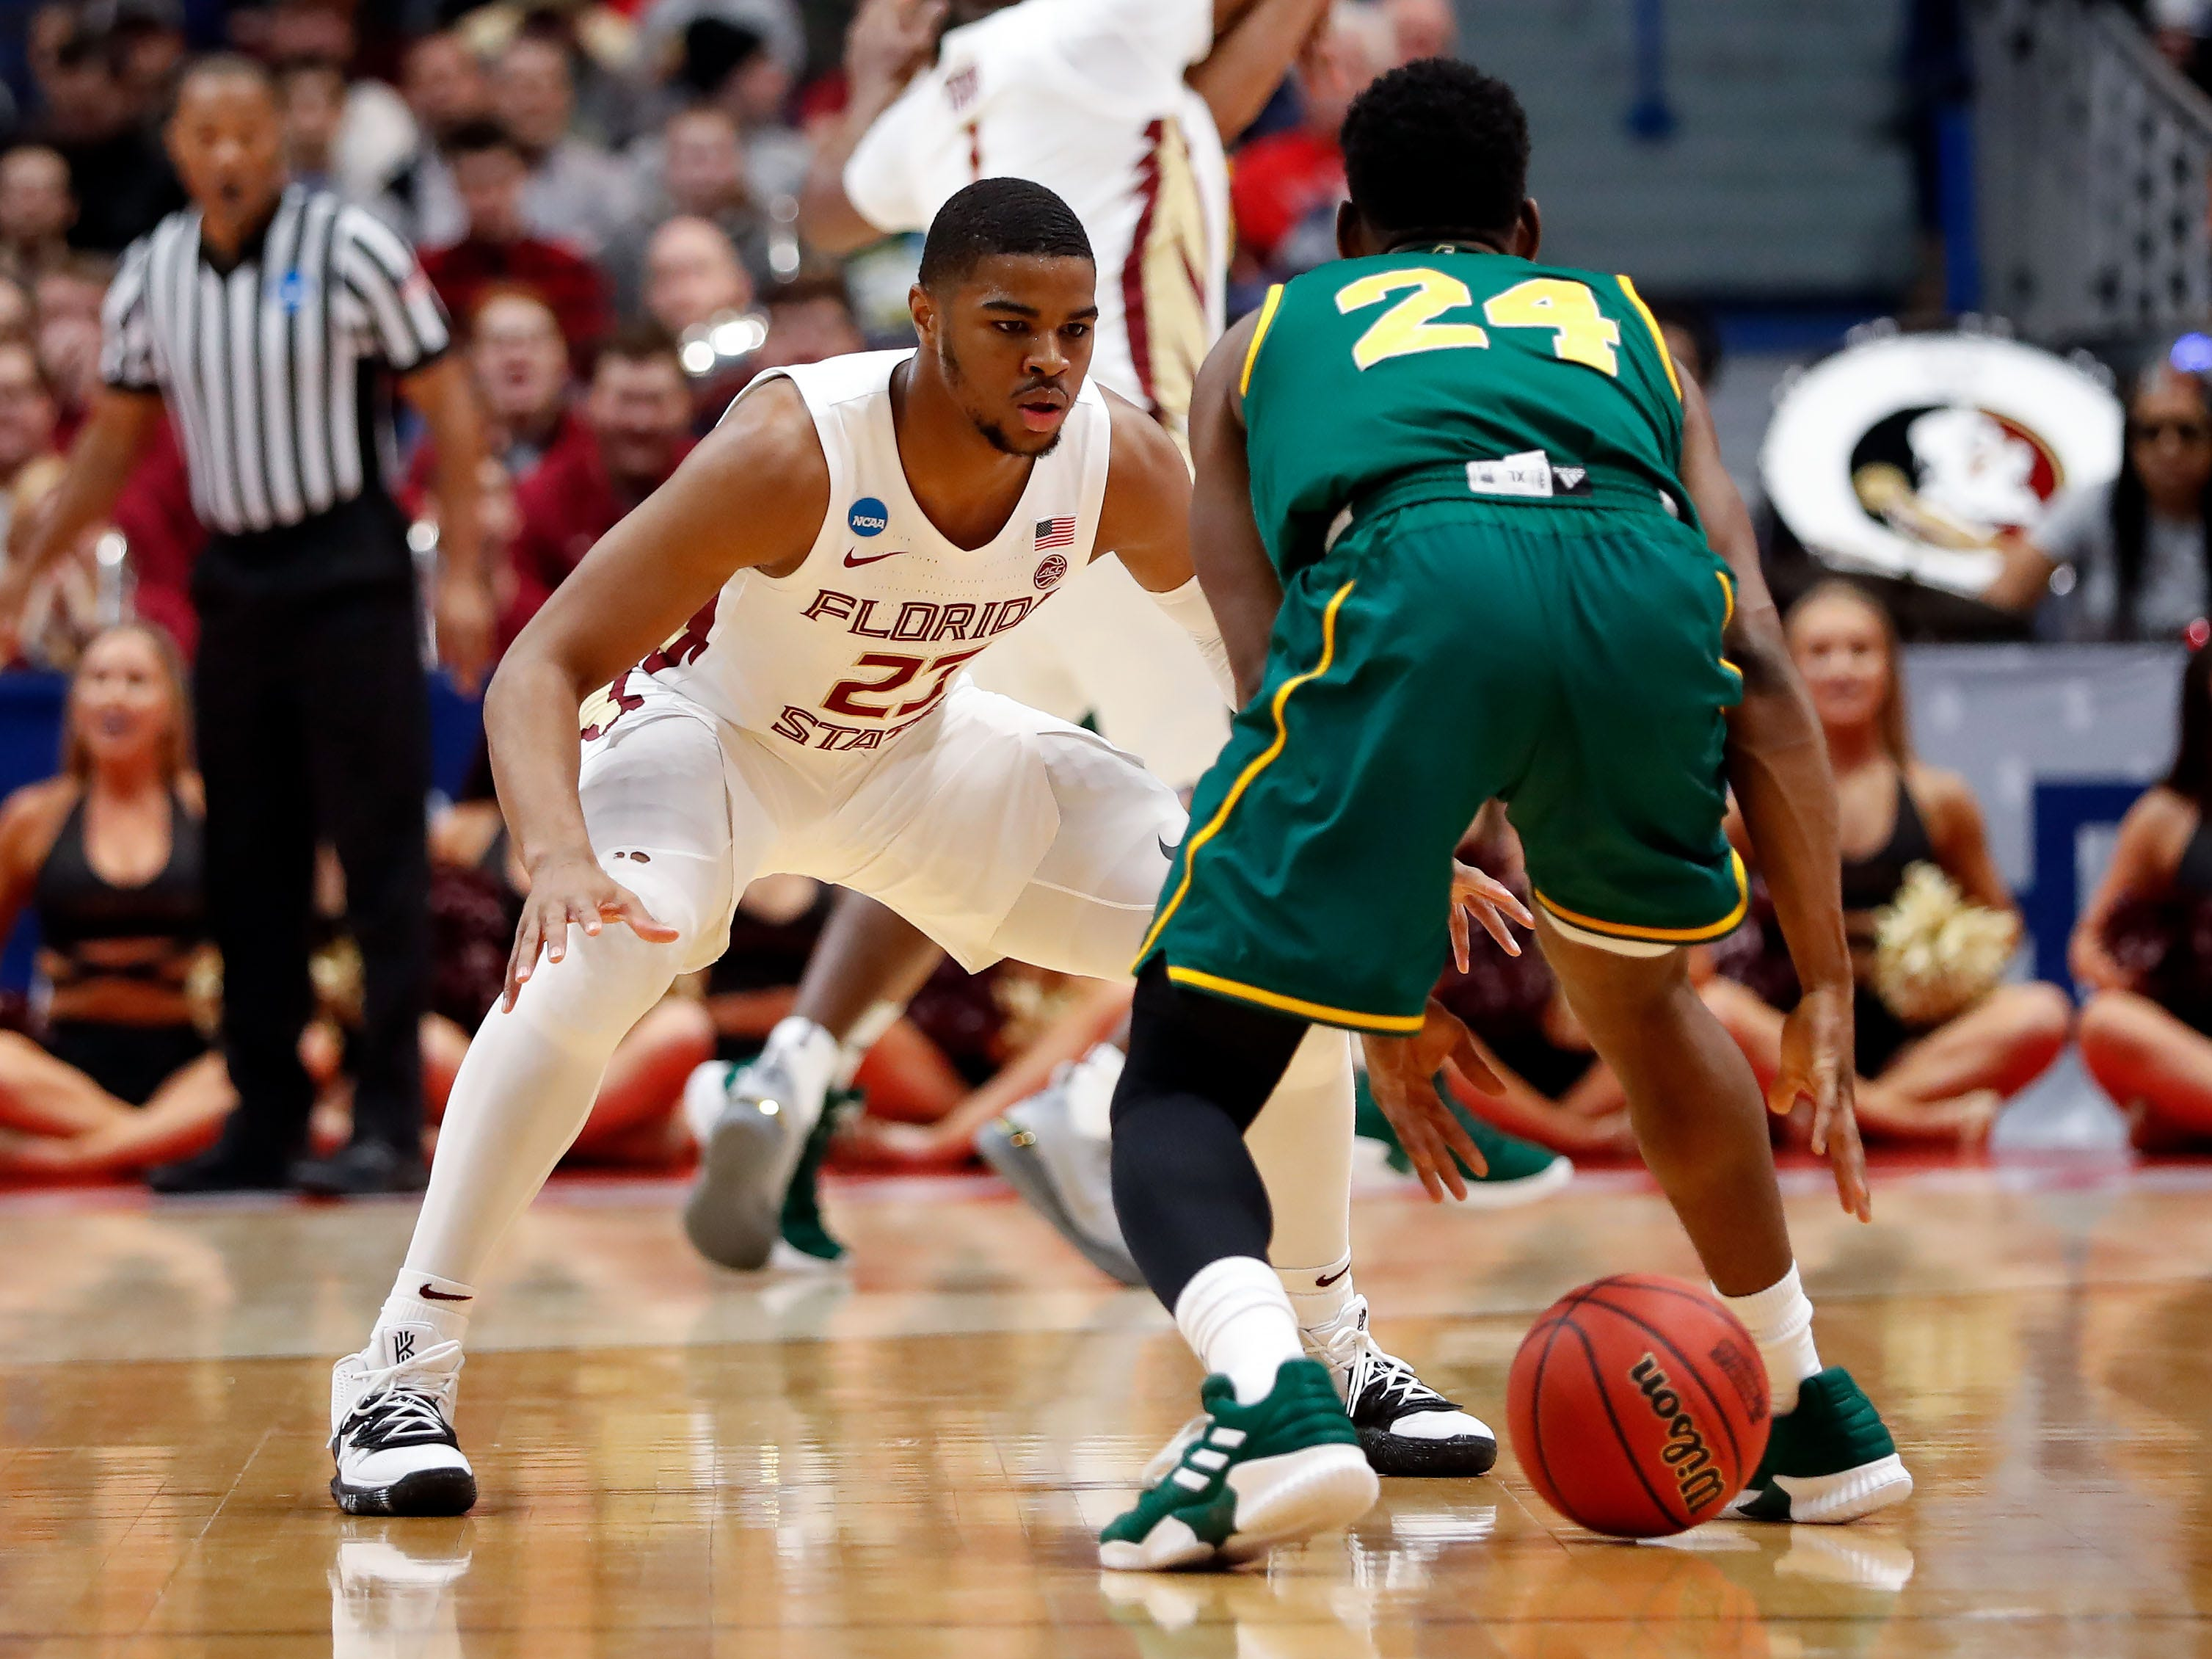 Mar 21, 2019; Hartford, CT, USA; Florida State Seminoles guard M.J. Walker (23) defends Vermont Catamounts guard Ben Shungu (24) during the first half of a game in the first round of the 2019 NCAA Tournament at XL Center. Mandatory Credit: David Butler II-USA TODAY Sports